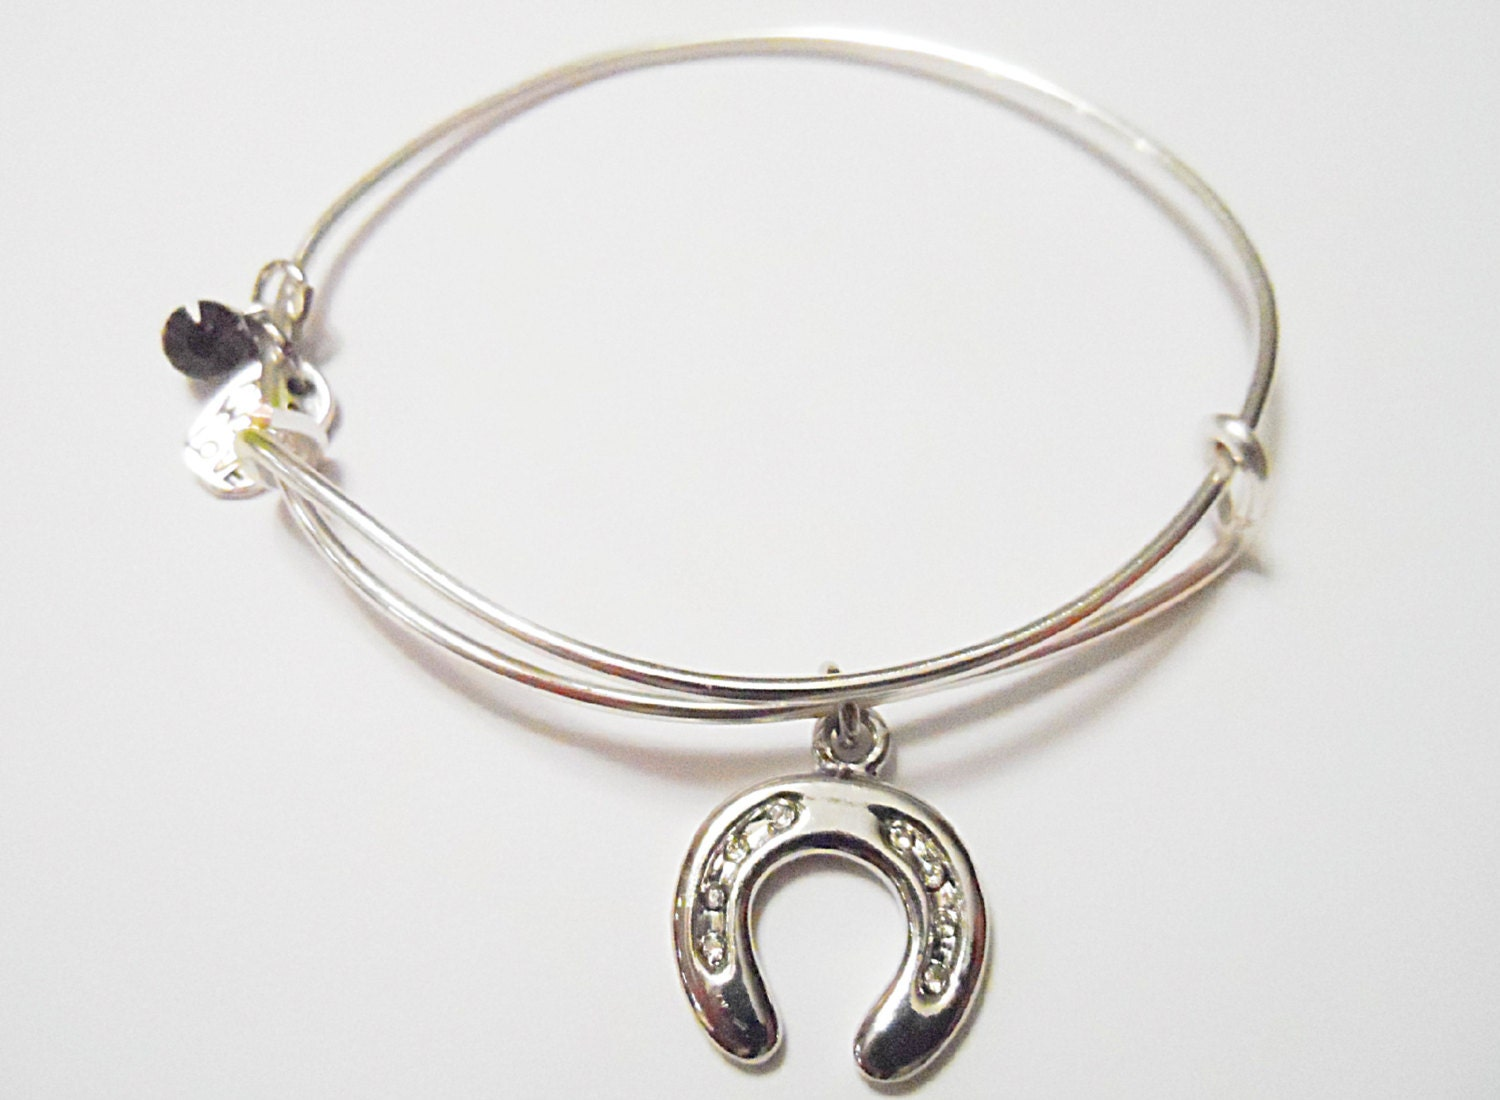 horseshoe alex and ani inspired charm bracelet